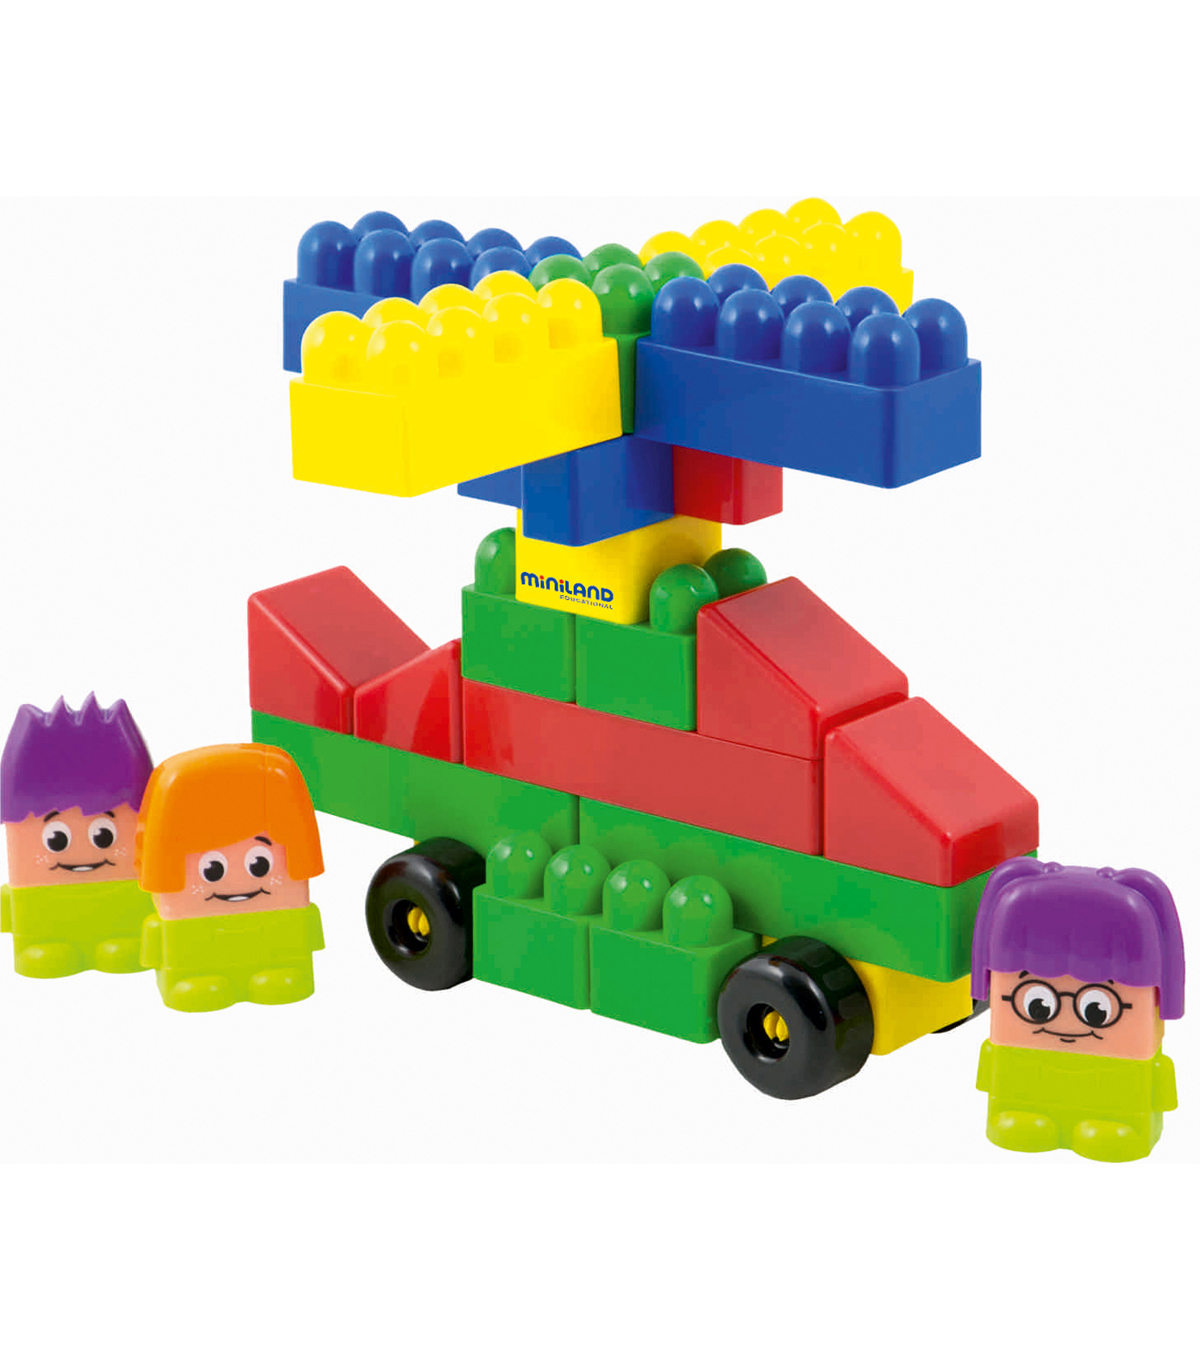 Miniland Blocks Super, Pack of 32